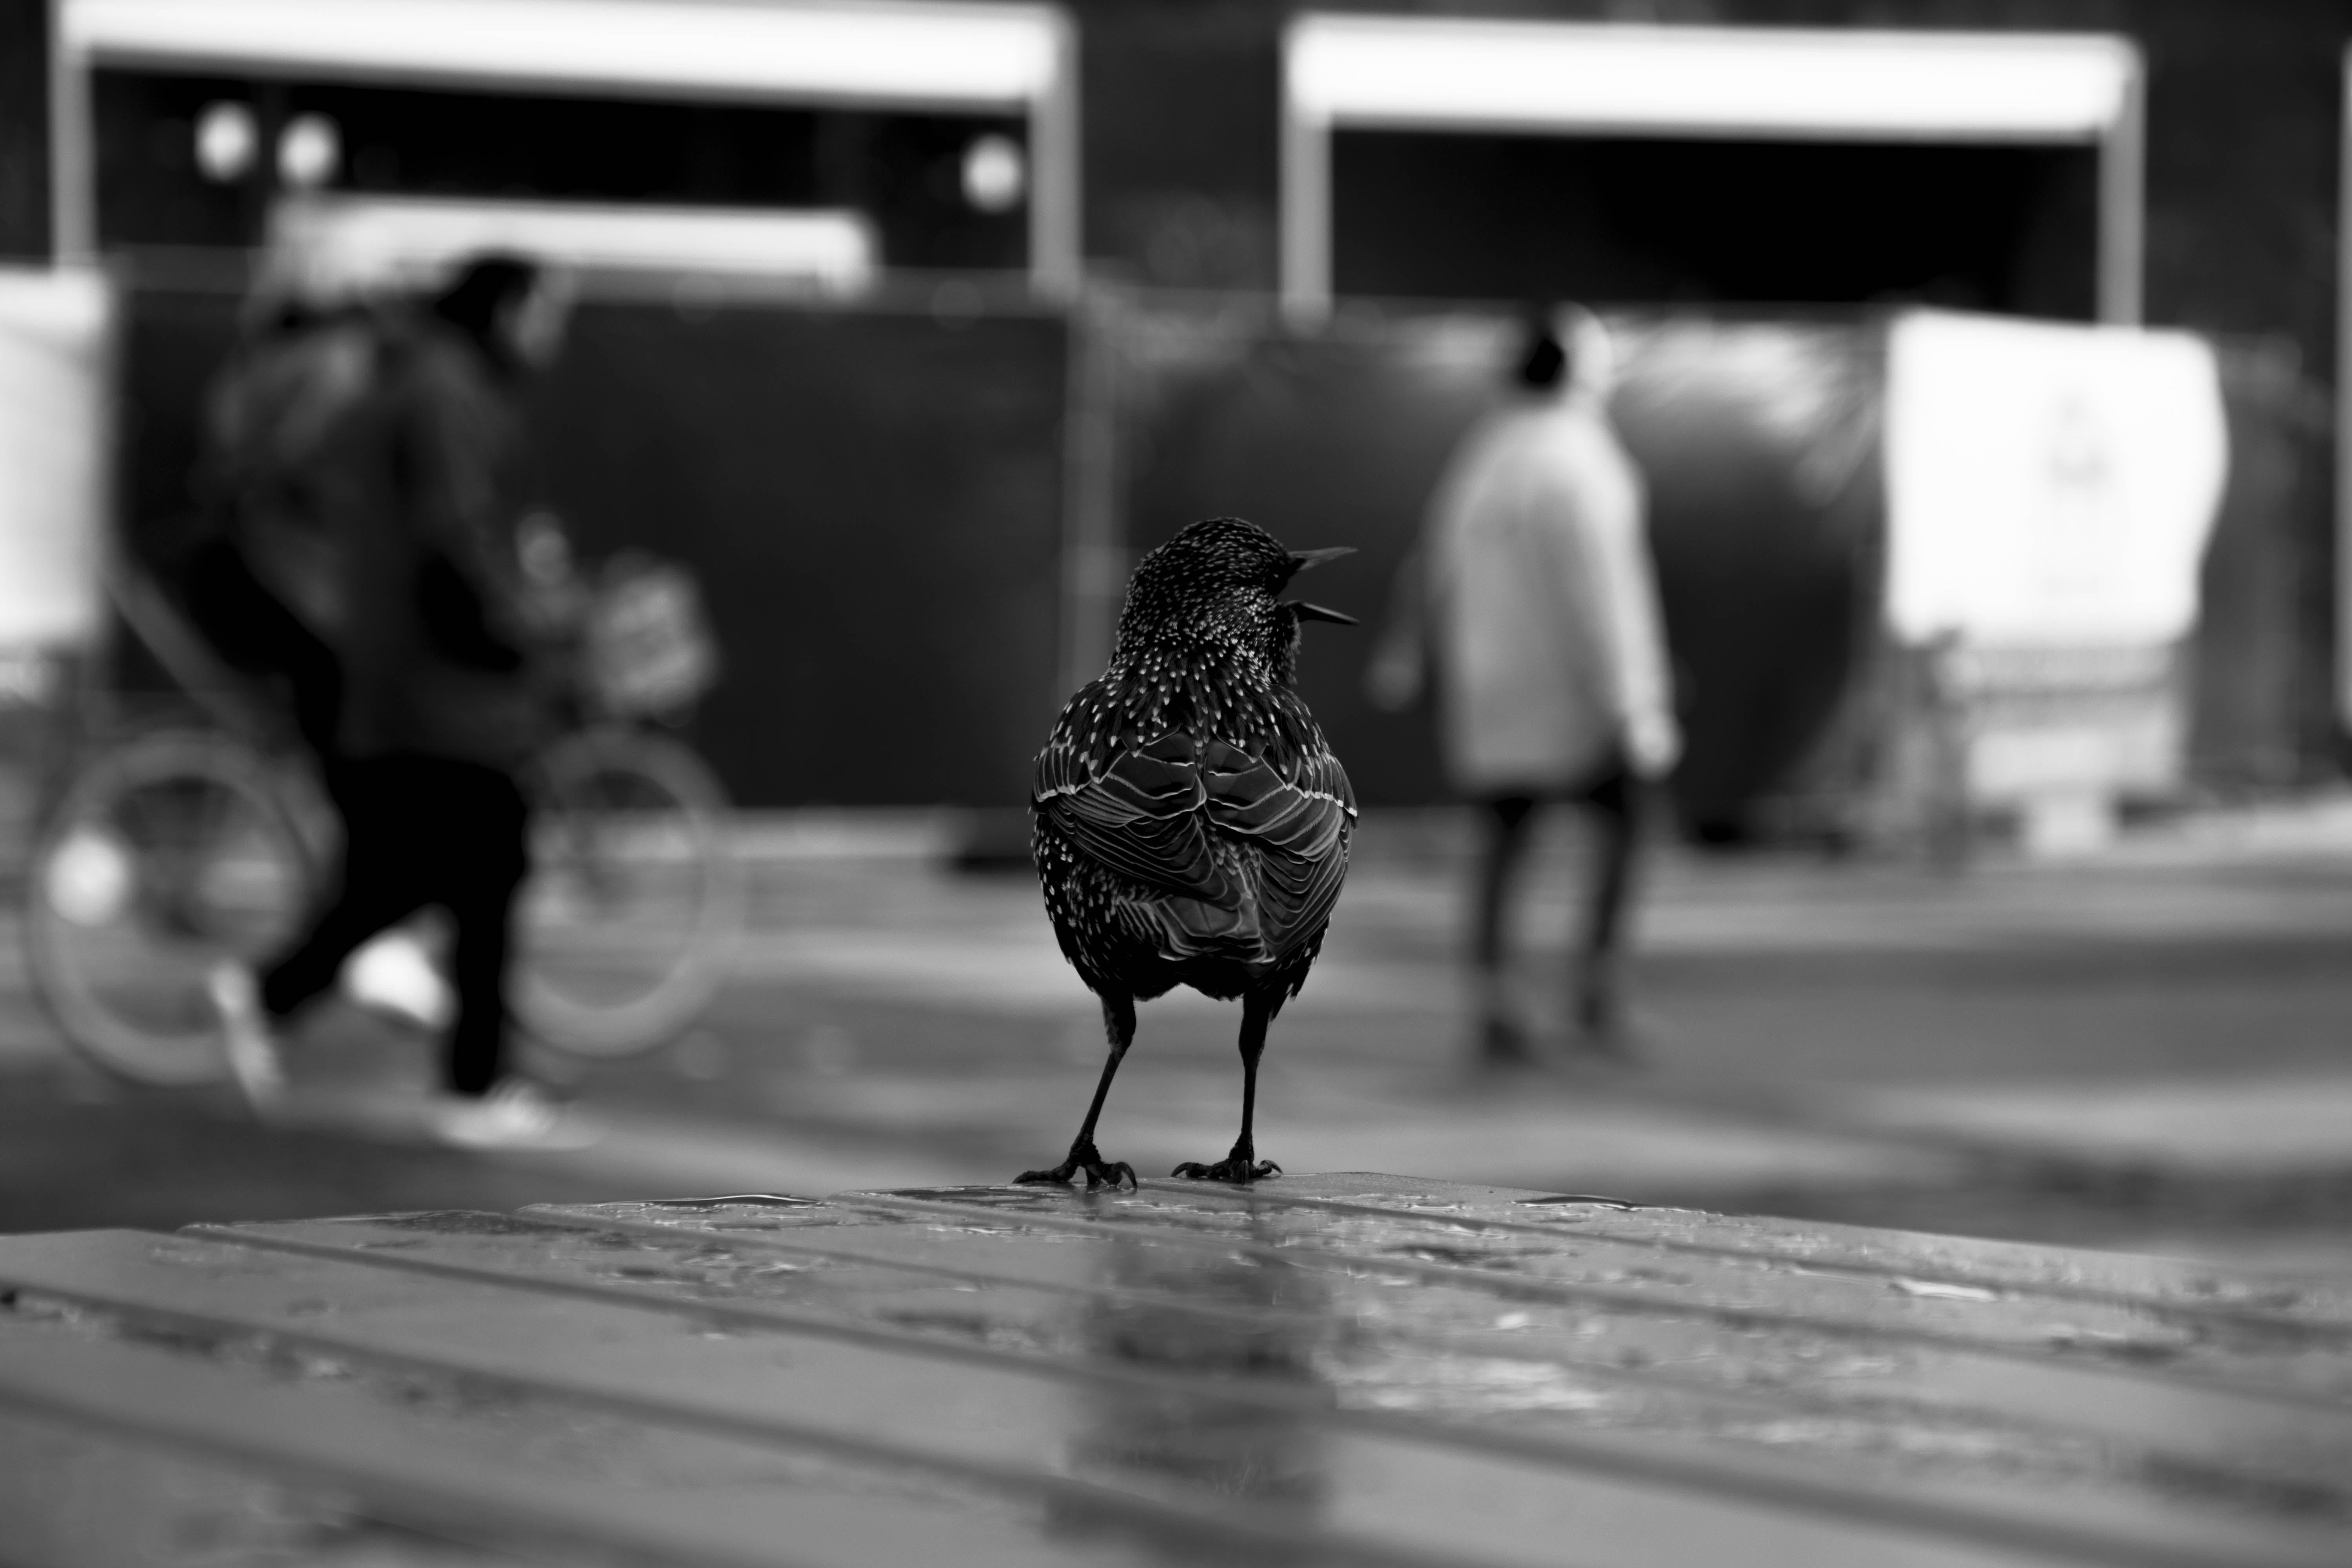 Grayscale Photography of Chicken on Surface